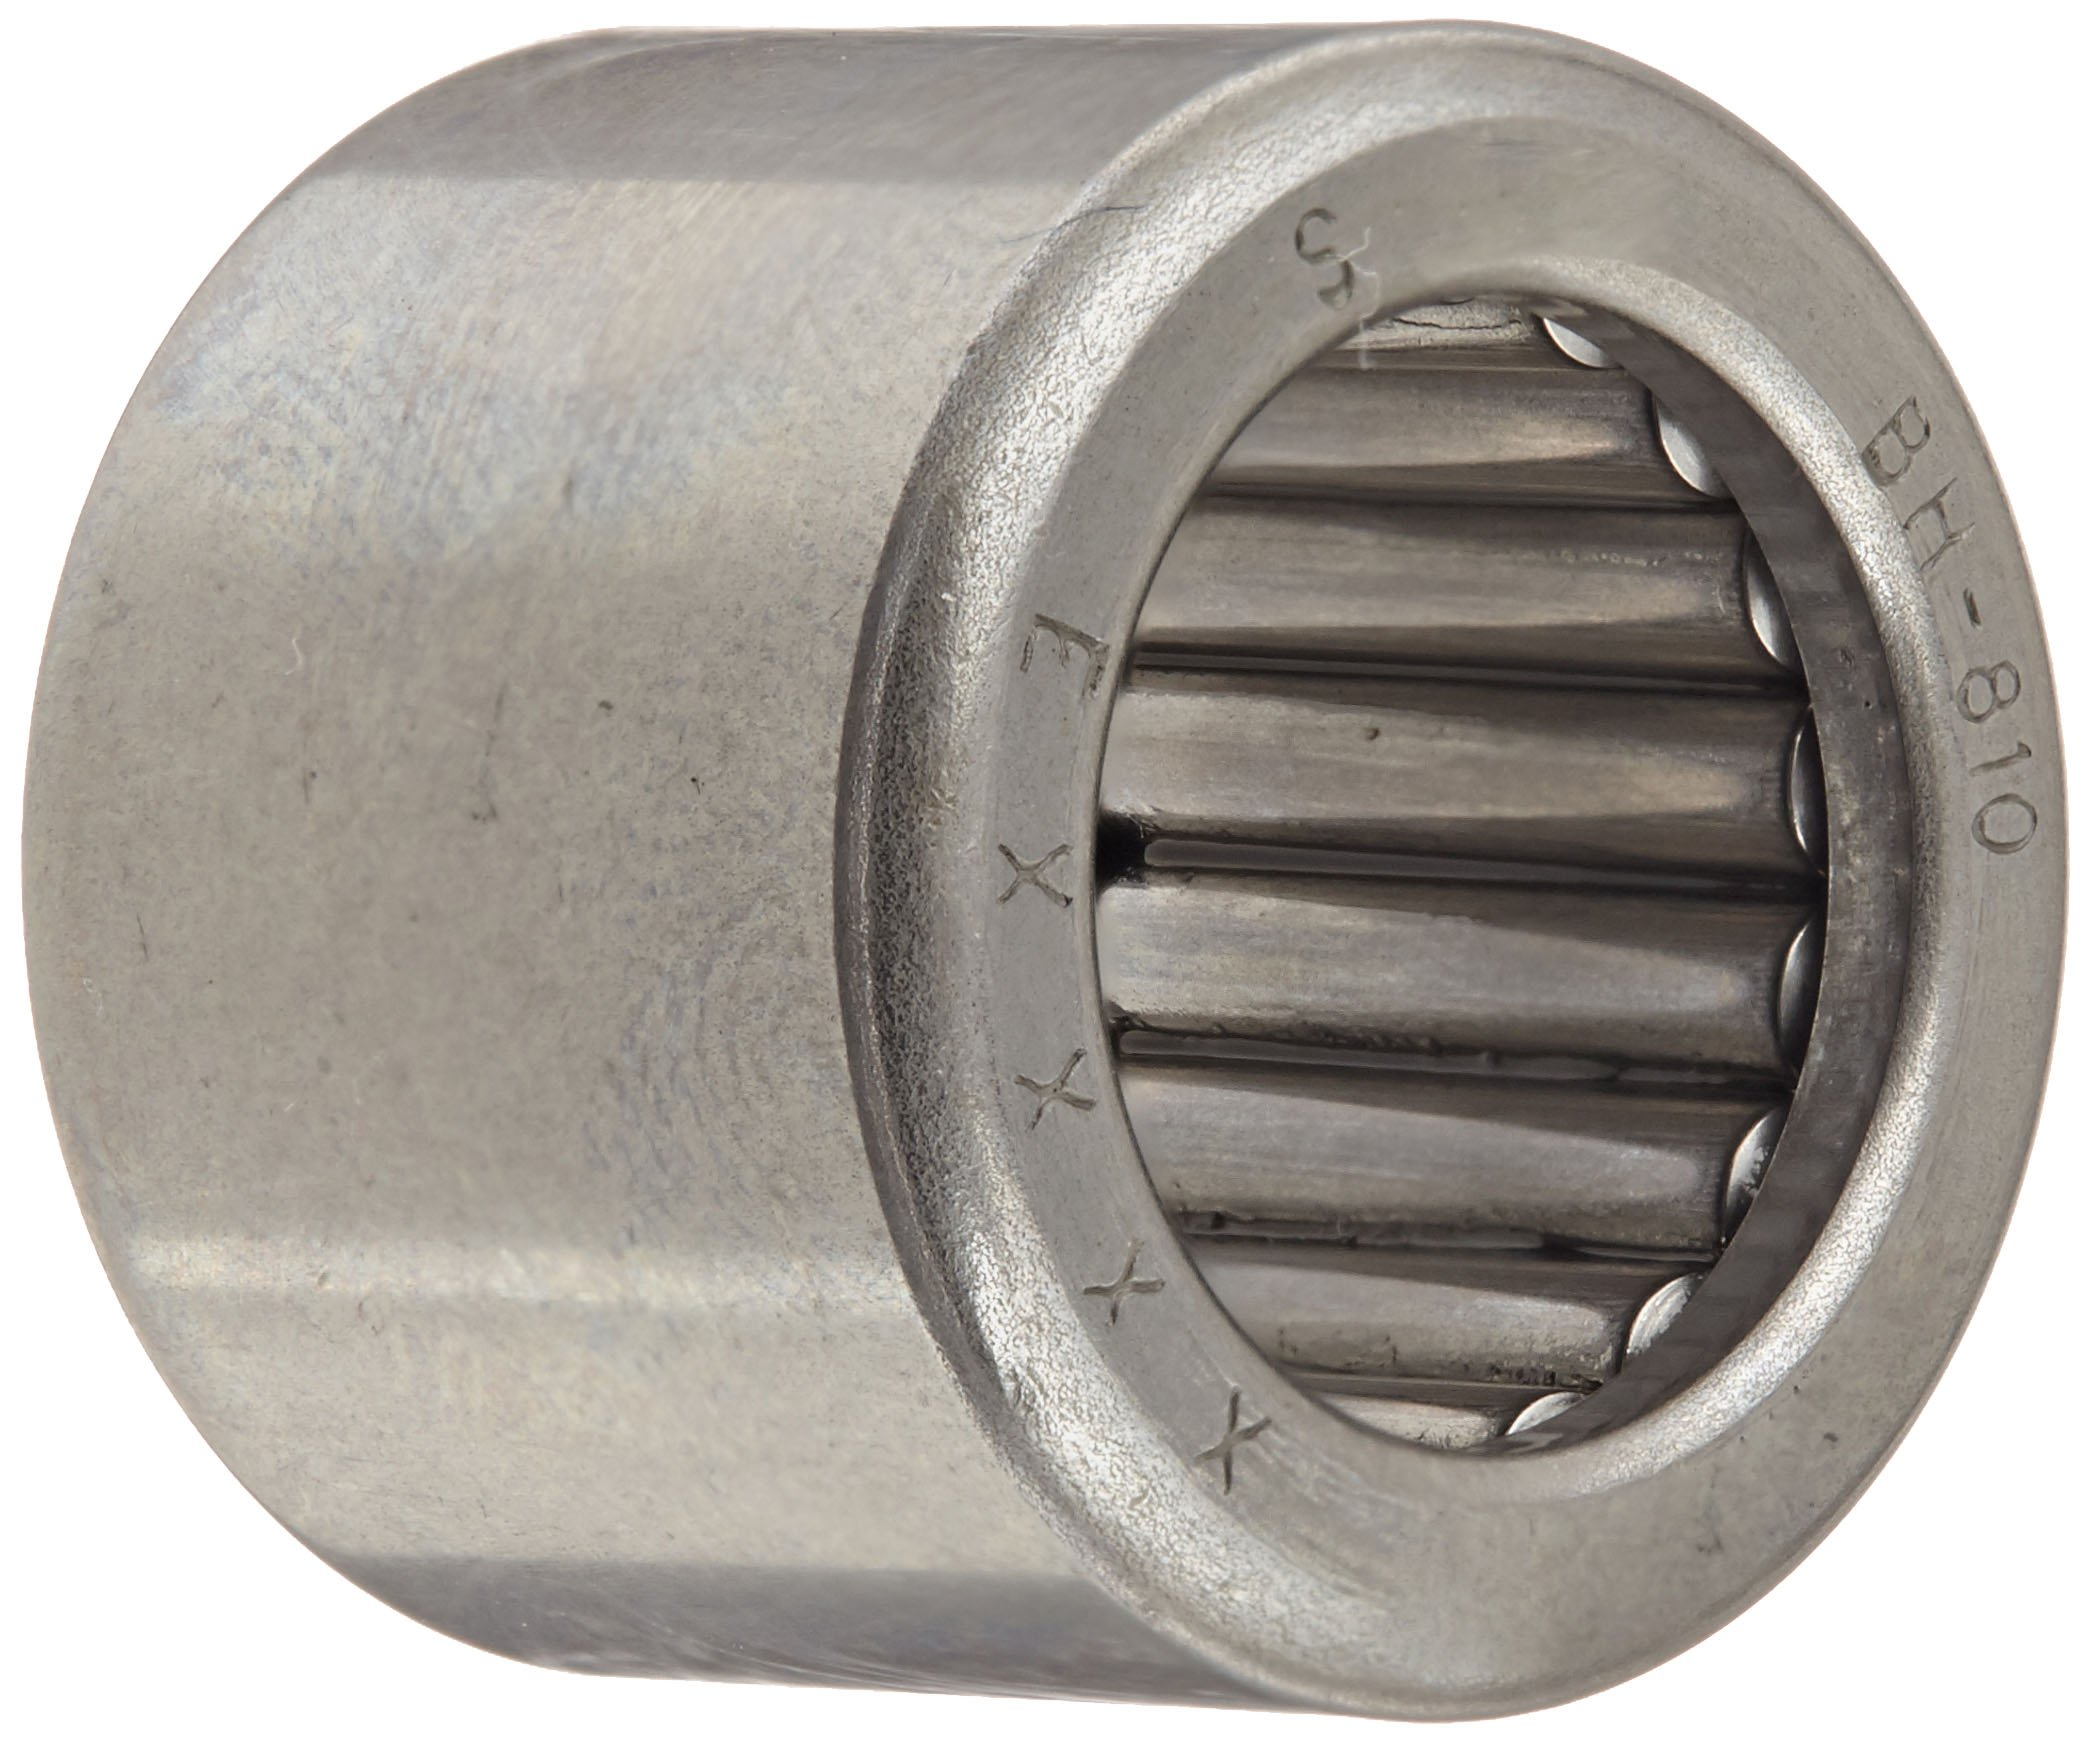 Inch 5//8 Width Open Koyo M-8101 Needle Roller Bearing Closed End 5500rpm Maximum Rotational Speed Drawn Cup 1//2 ID 11//16 OD